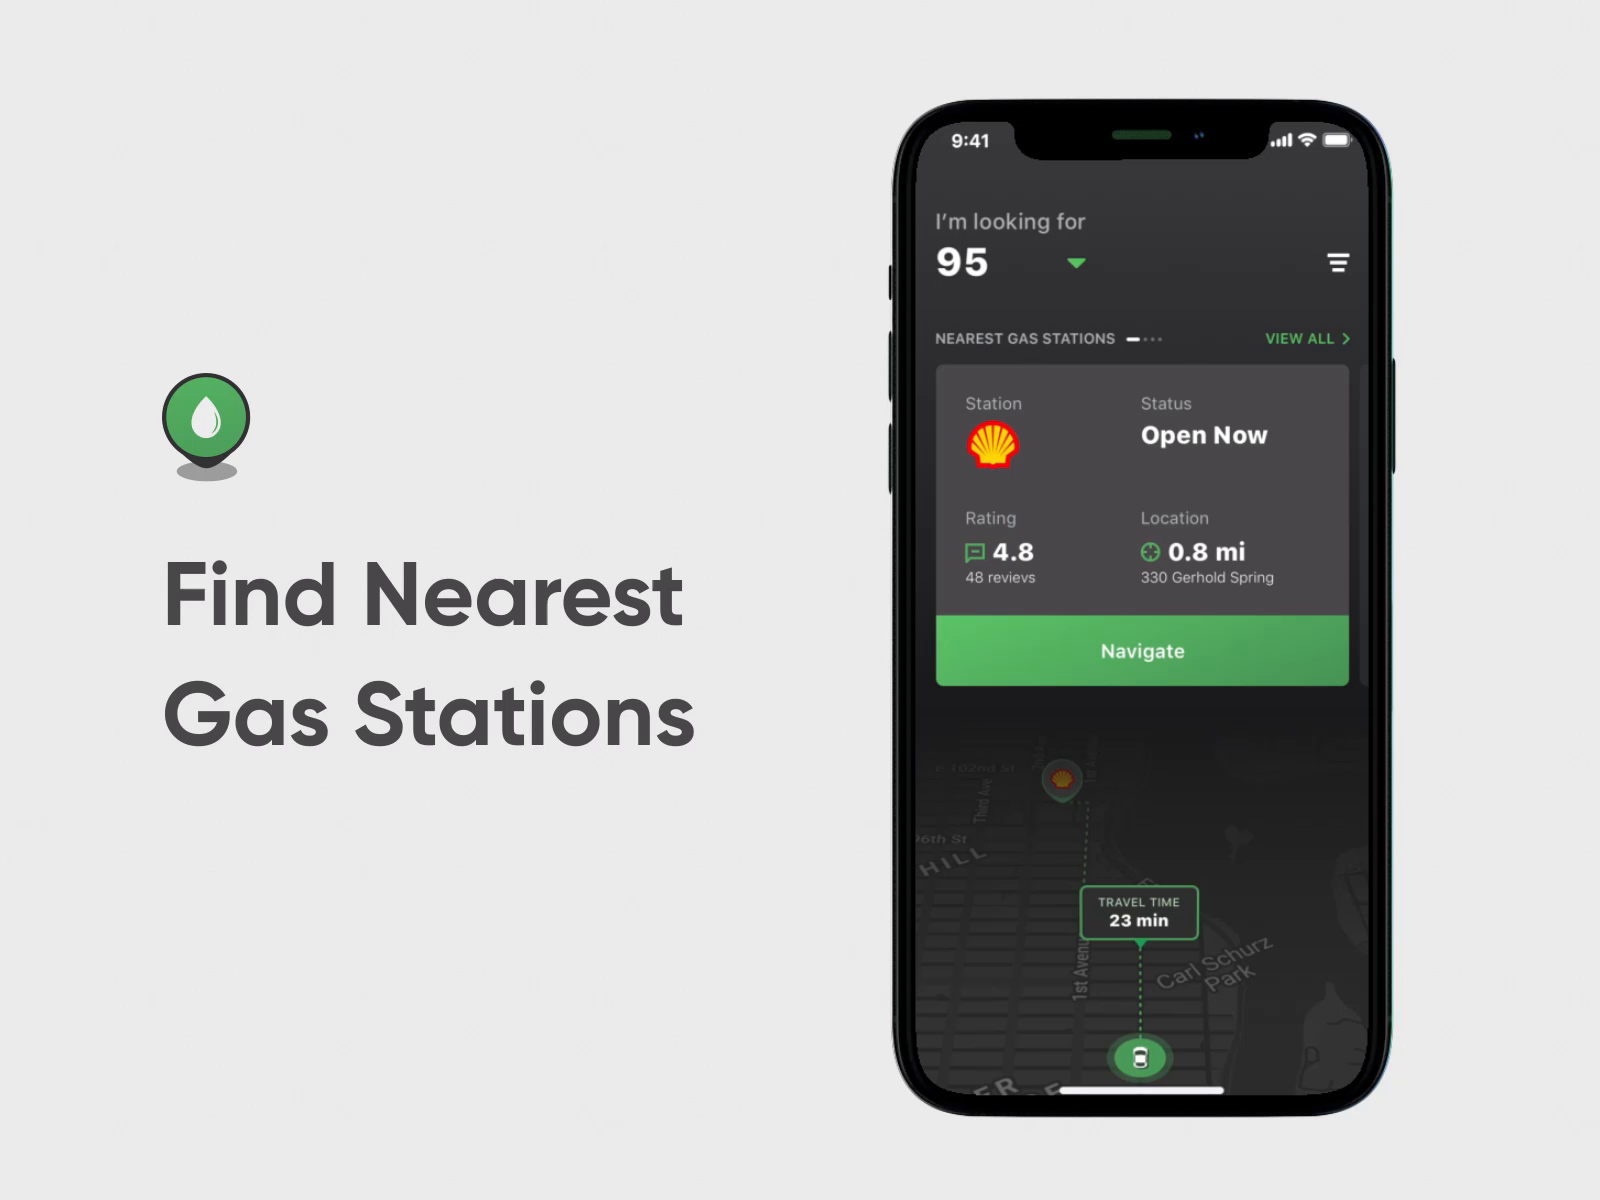 Find Nearest Gas Station >> Search Nearest Gas Stations Mobile App Animation By Kostia